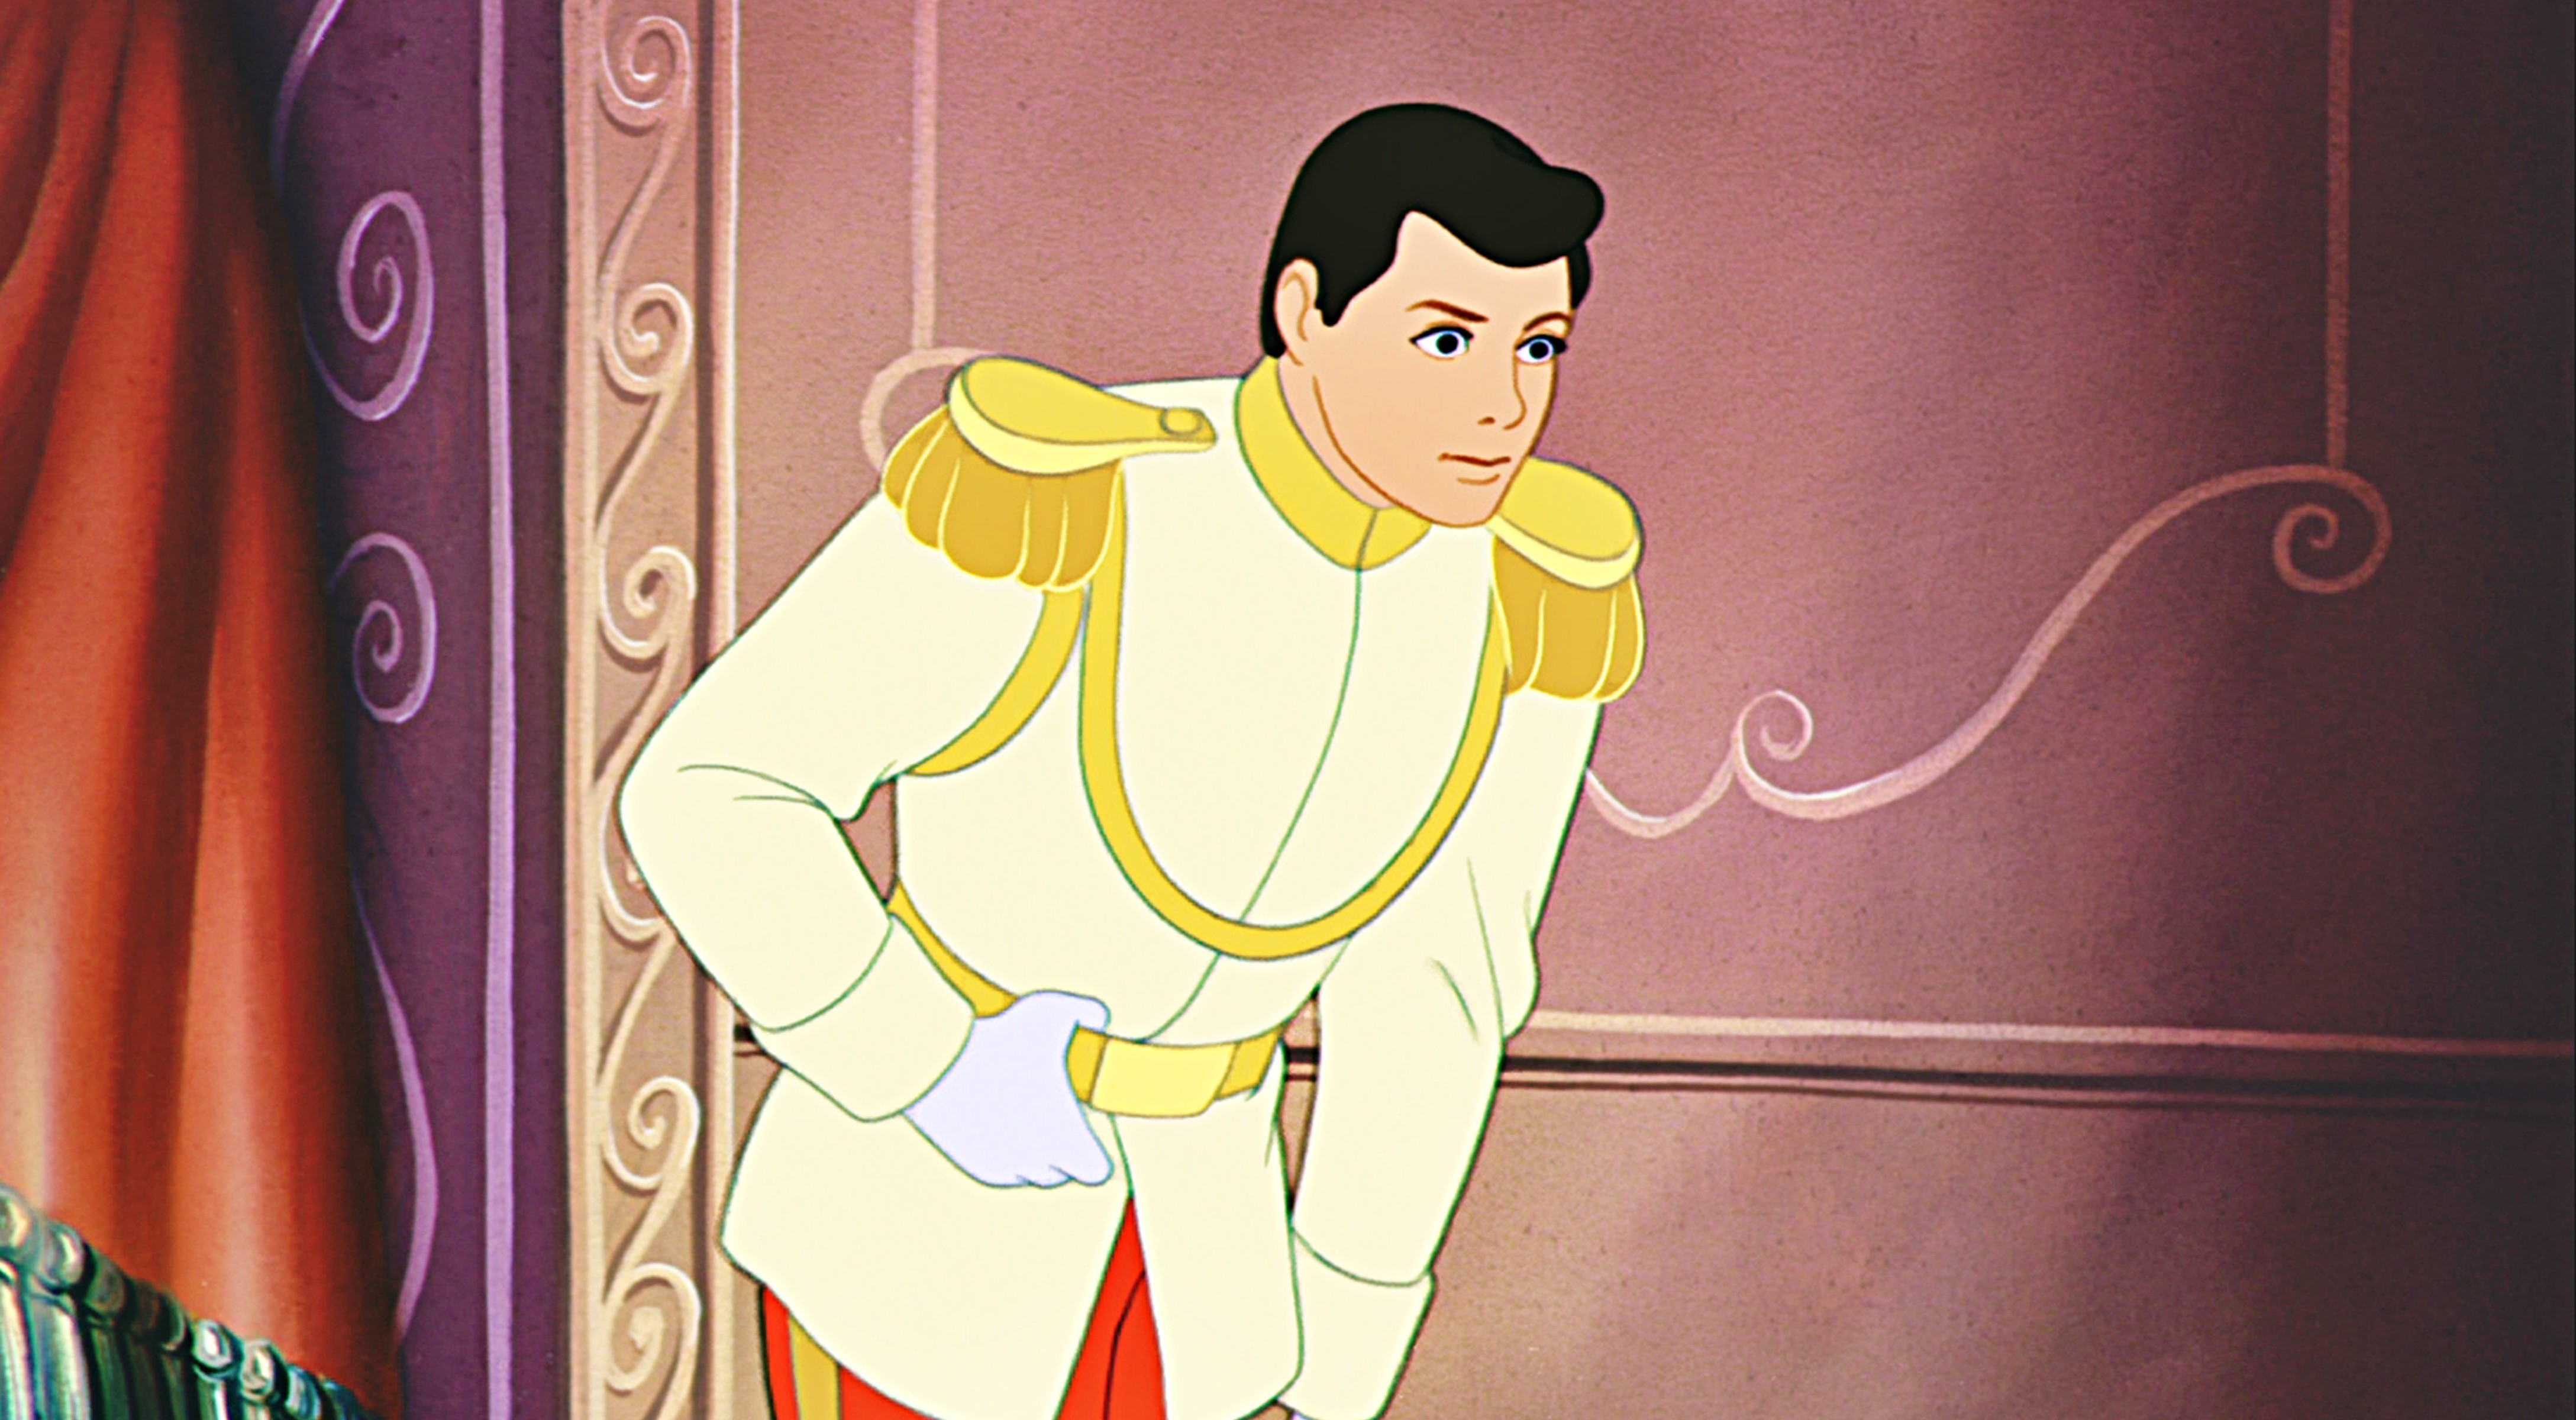 live prince charming in the works at disney